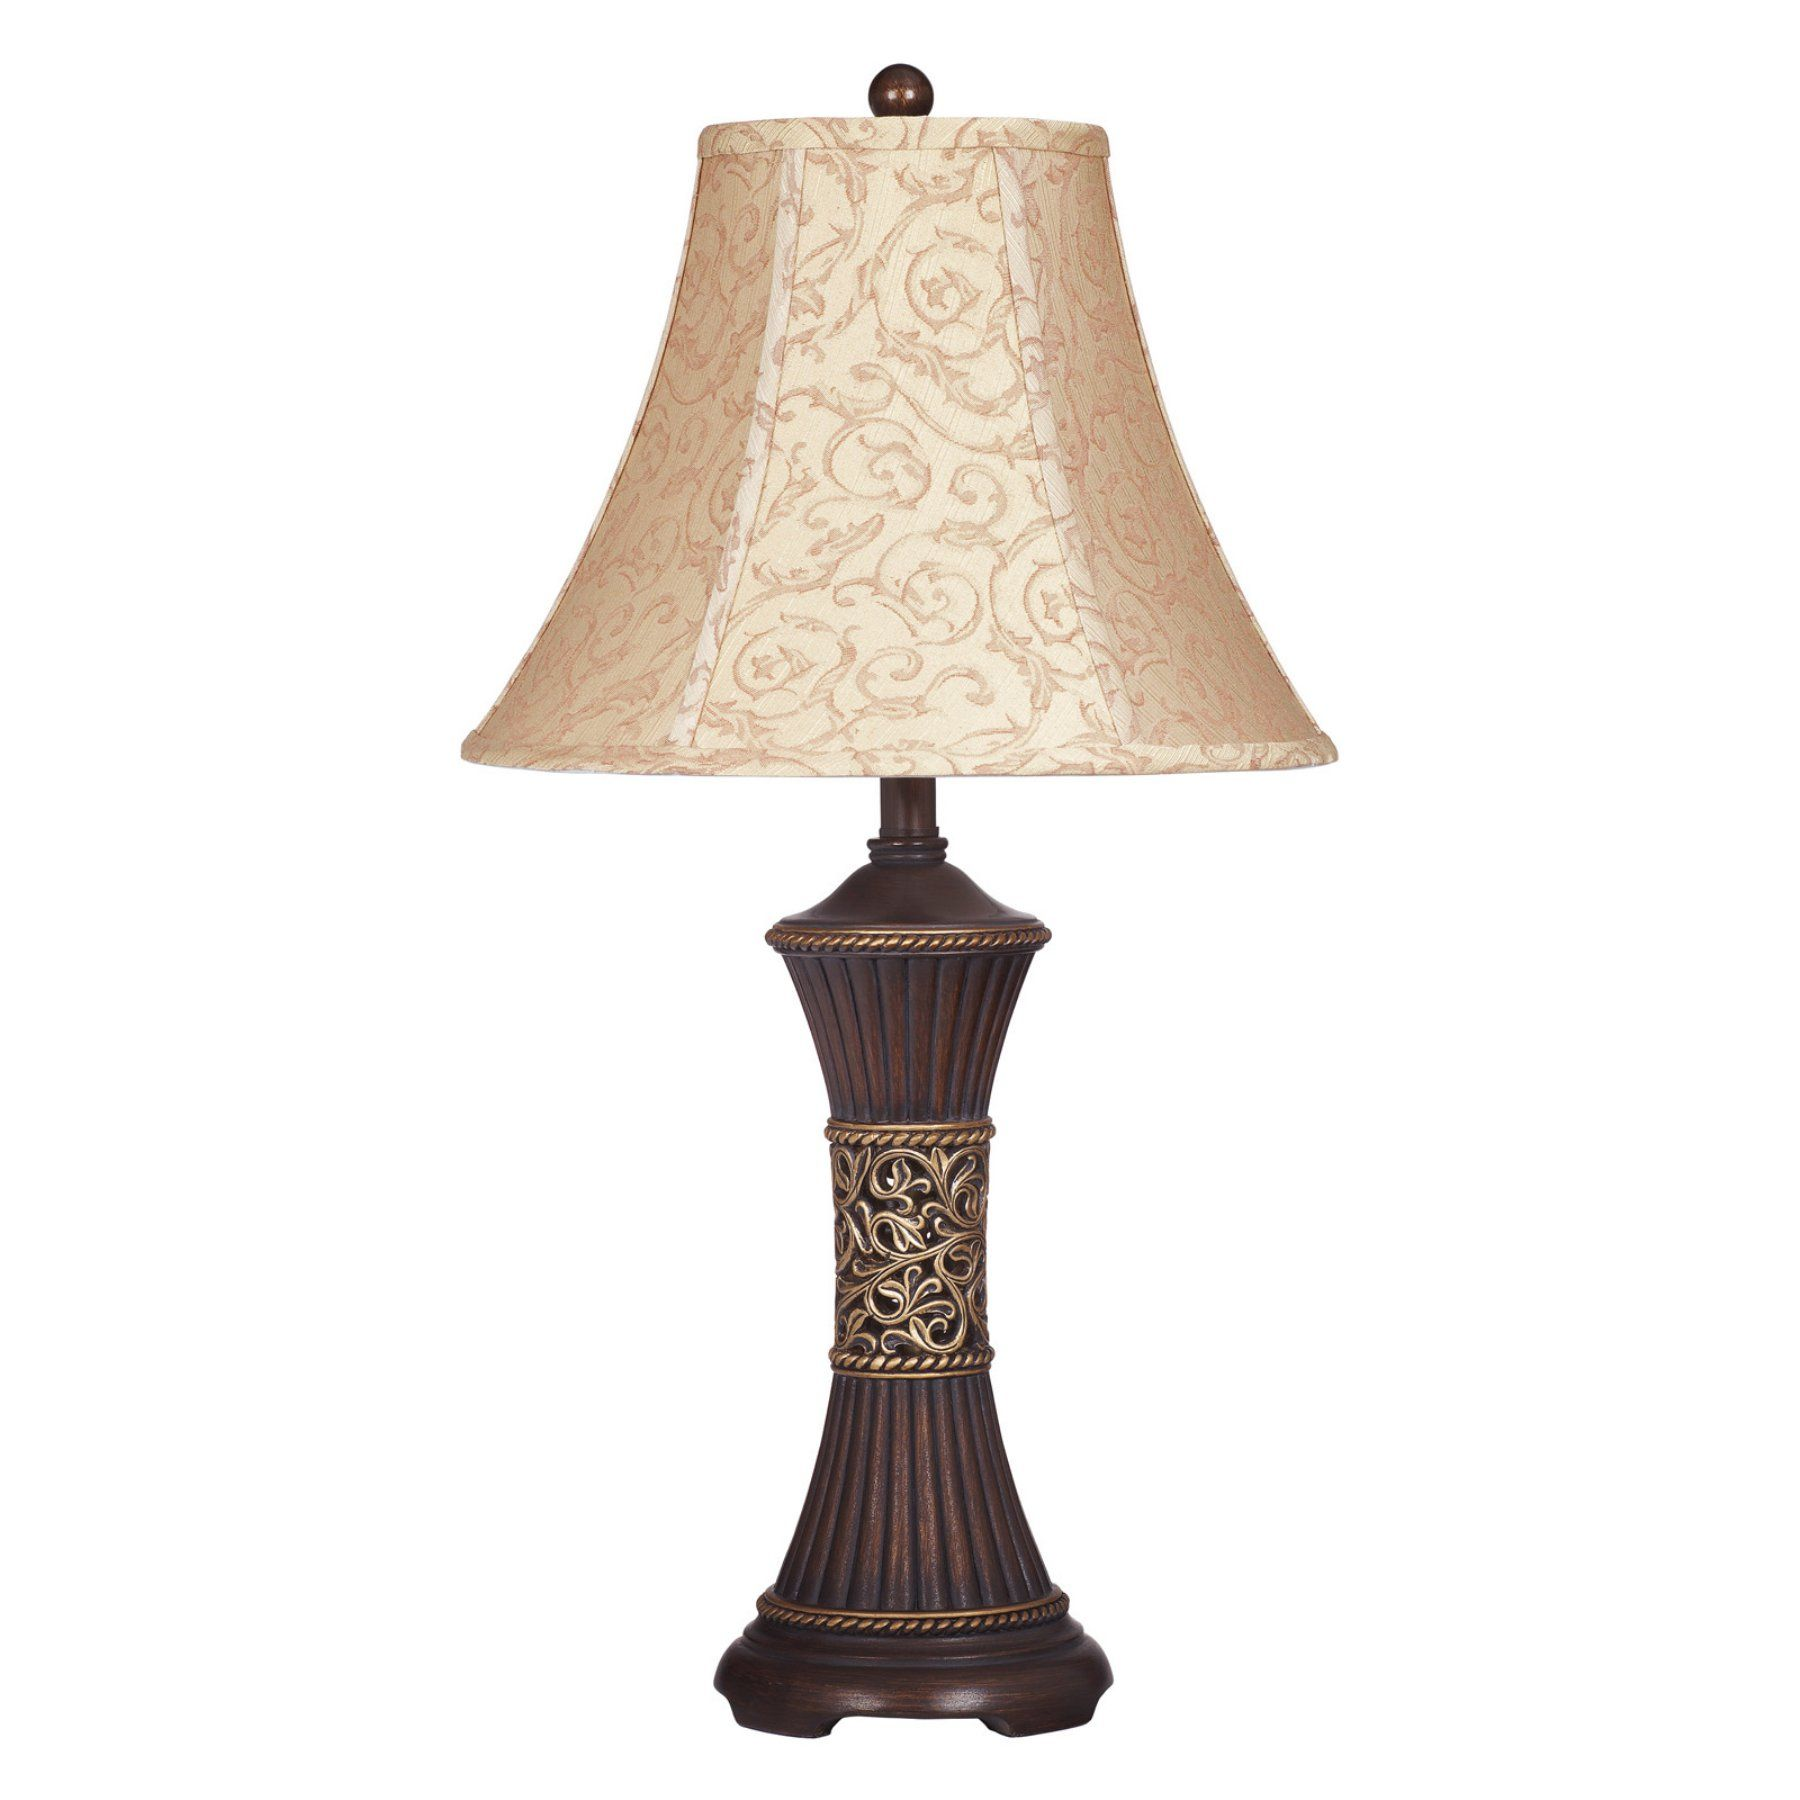 Signature Design by Ashley L372944 Mariana Table Lamp